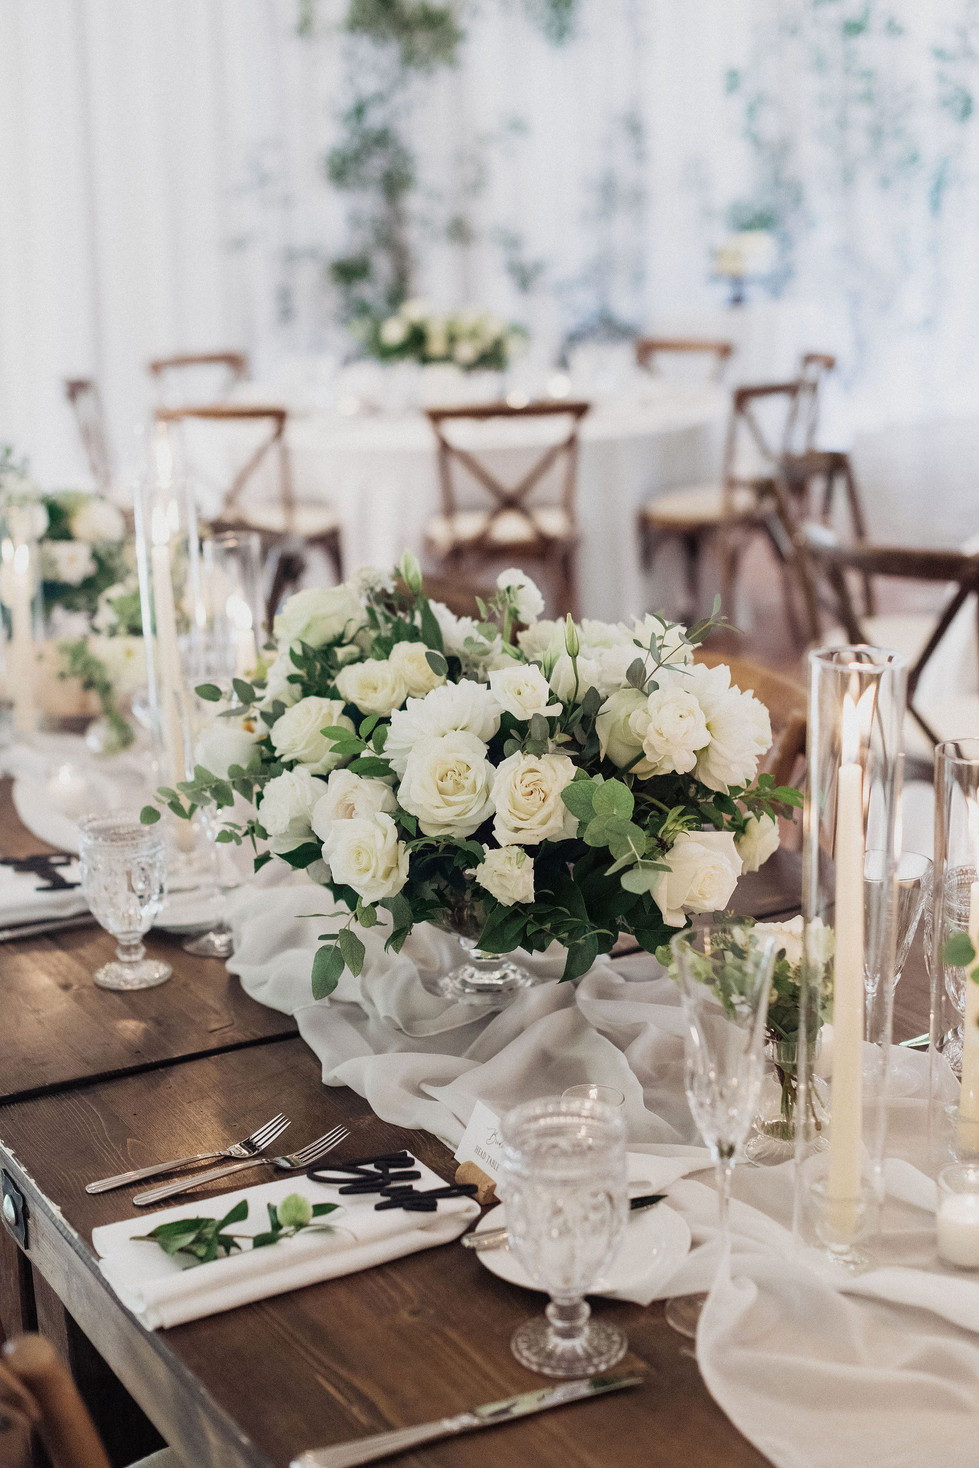 White and cream centerpieces with roses, dahlias, ranunculus, eucalyptus and vines. Photo: Eden Strader